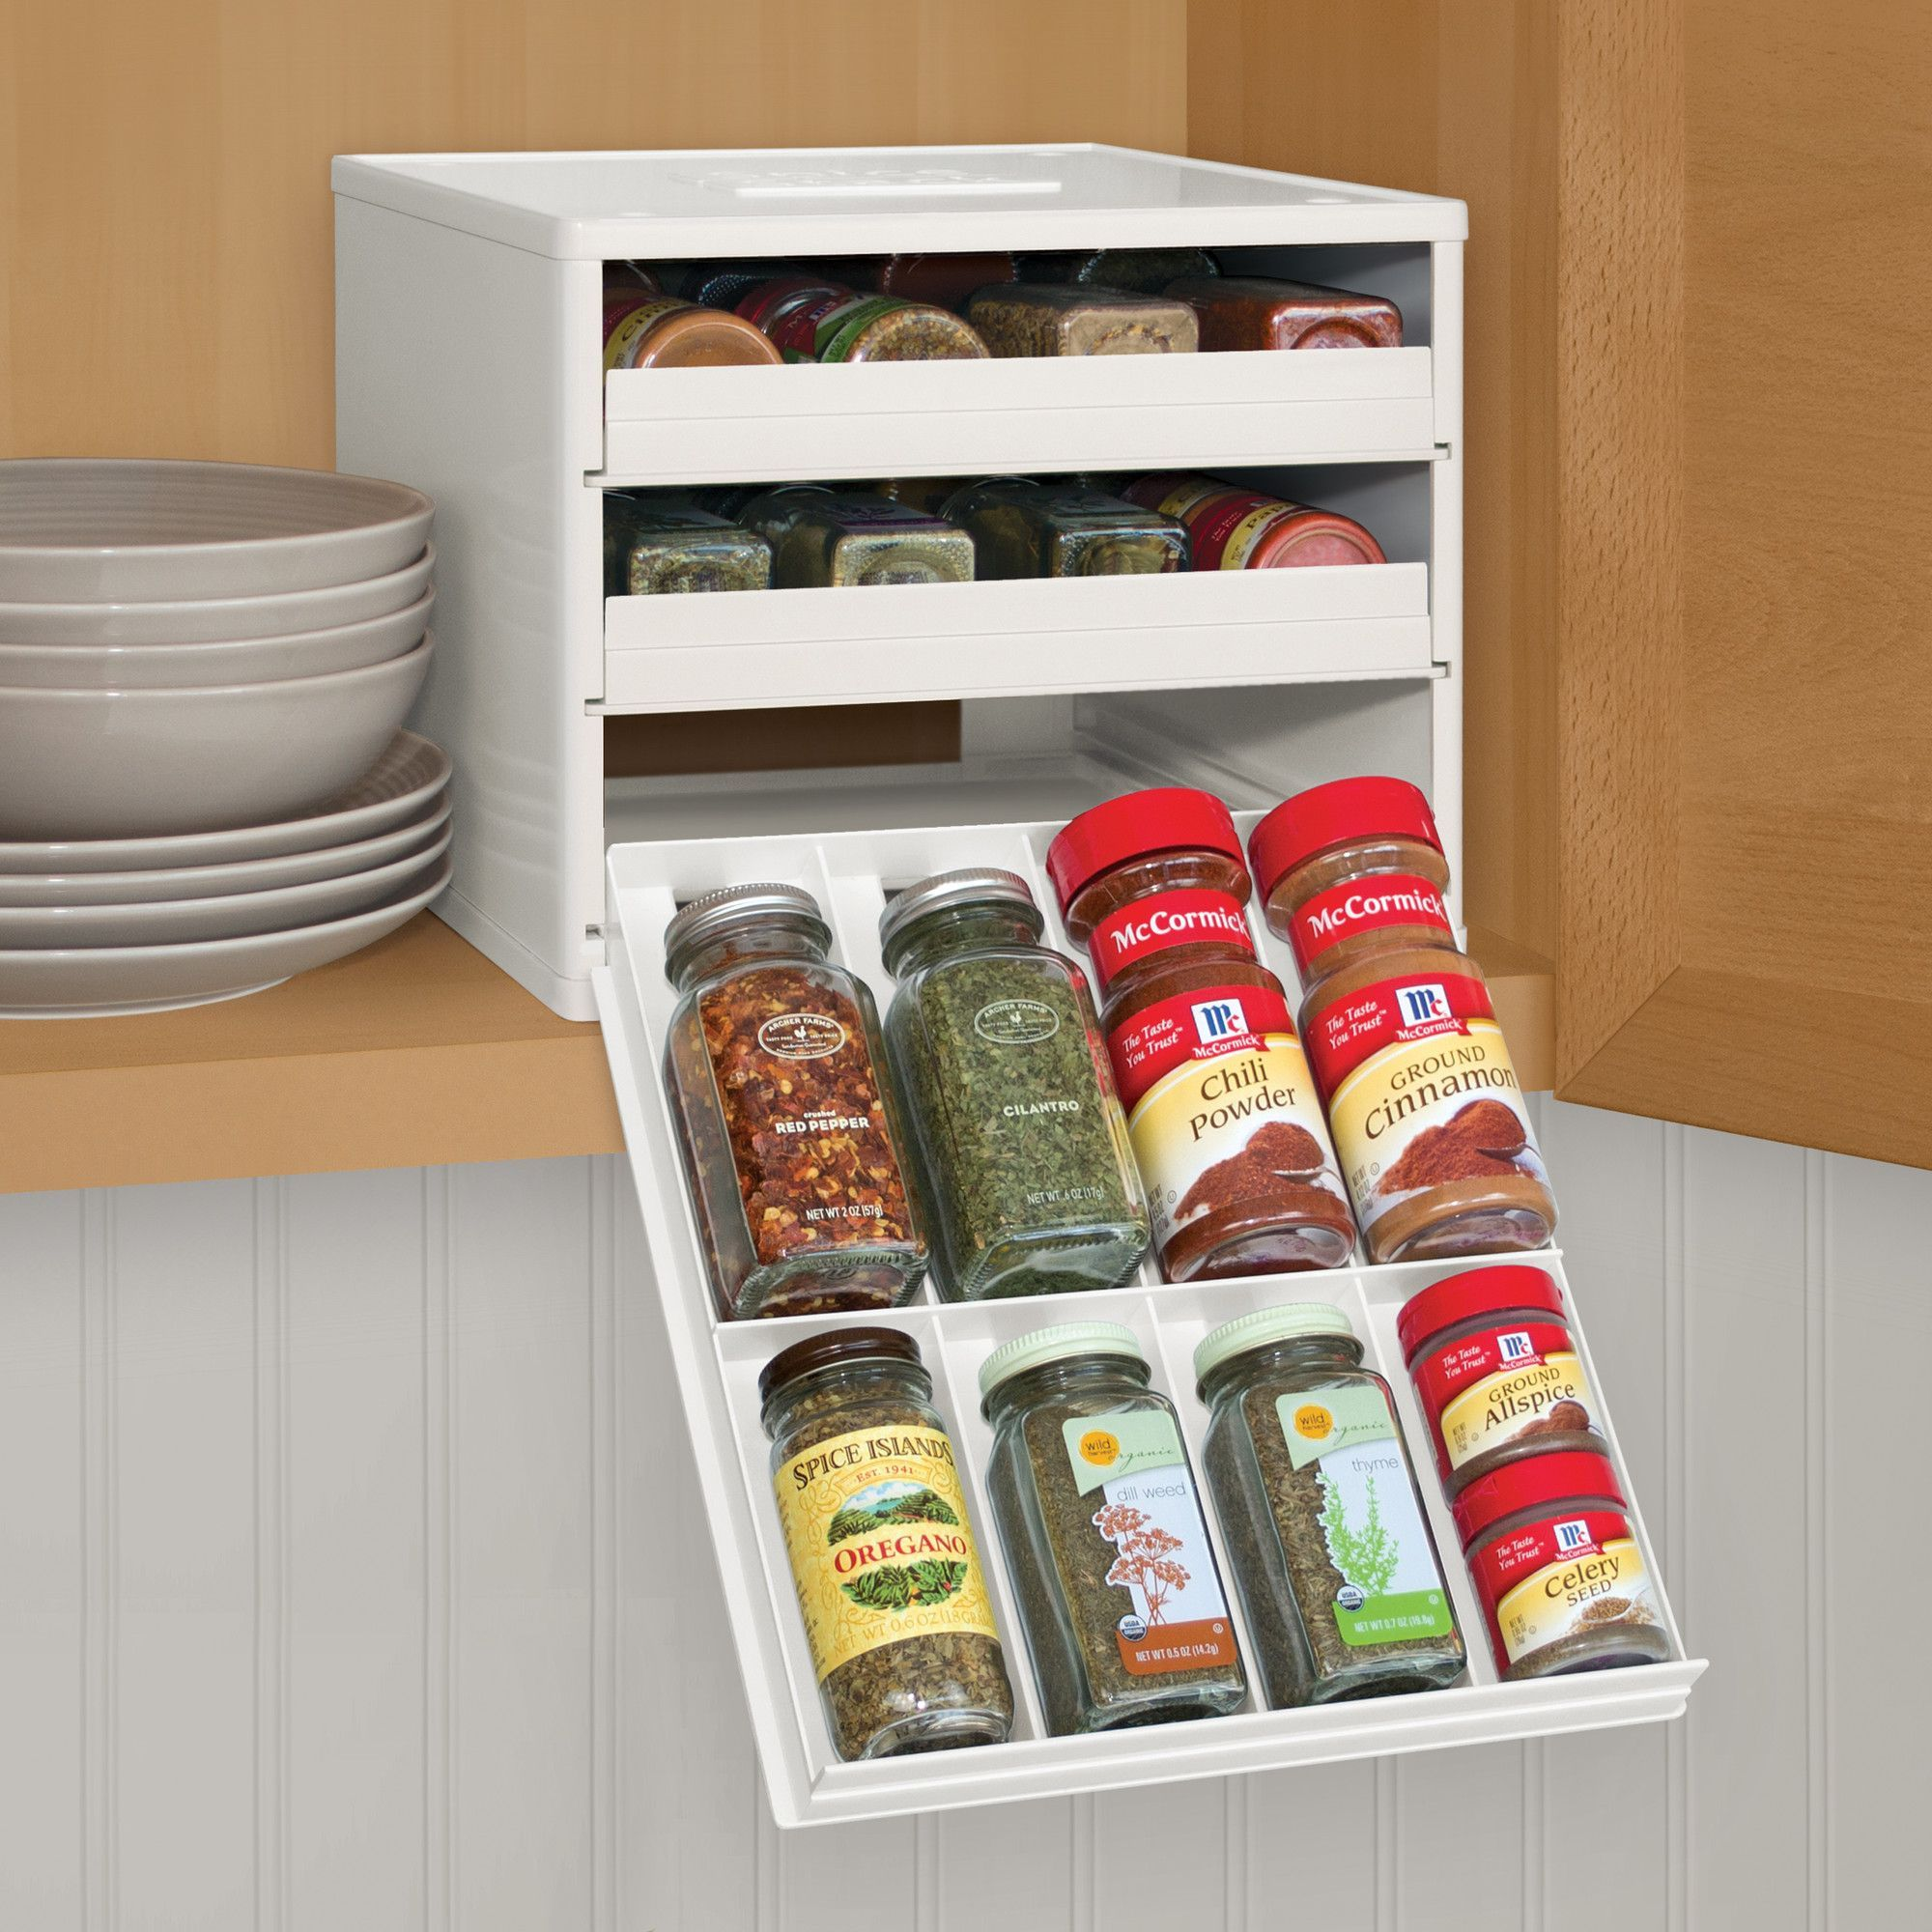 Kitchen Shelf Labels: Features: -Includes 96 (48 Printed, 48 Blank) Drawer Labels For Custom Organization. -Spice Rack